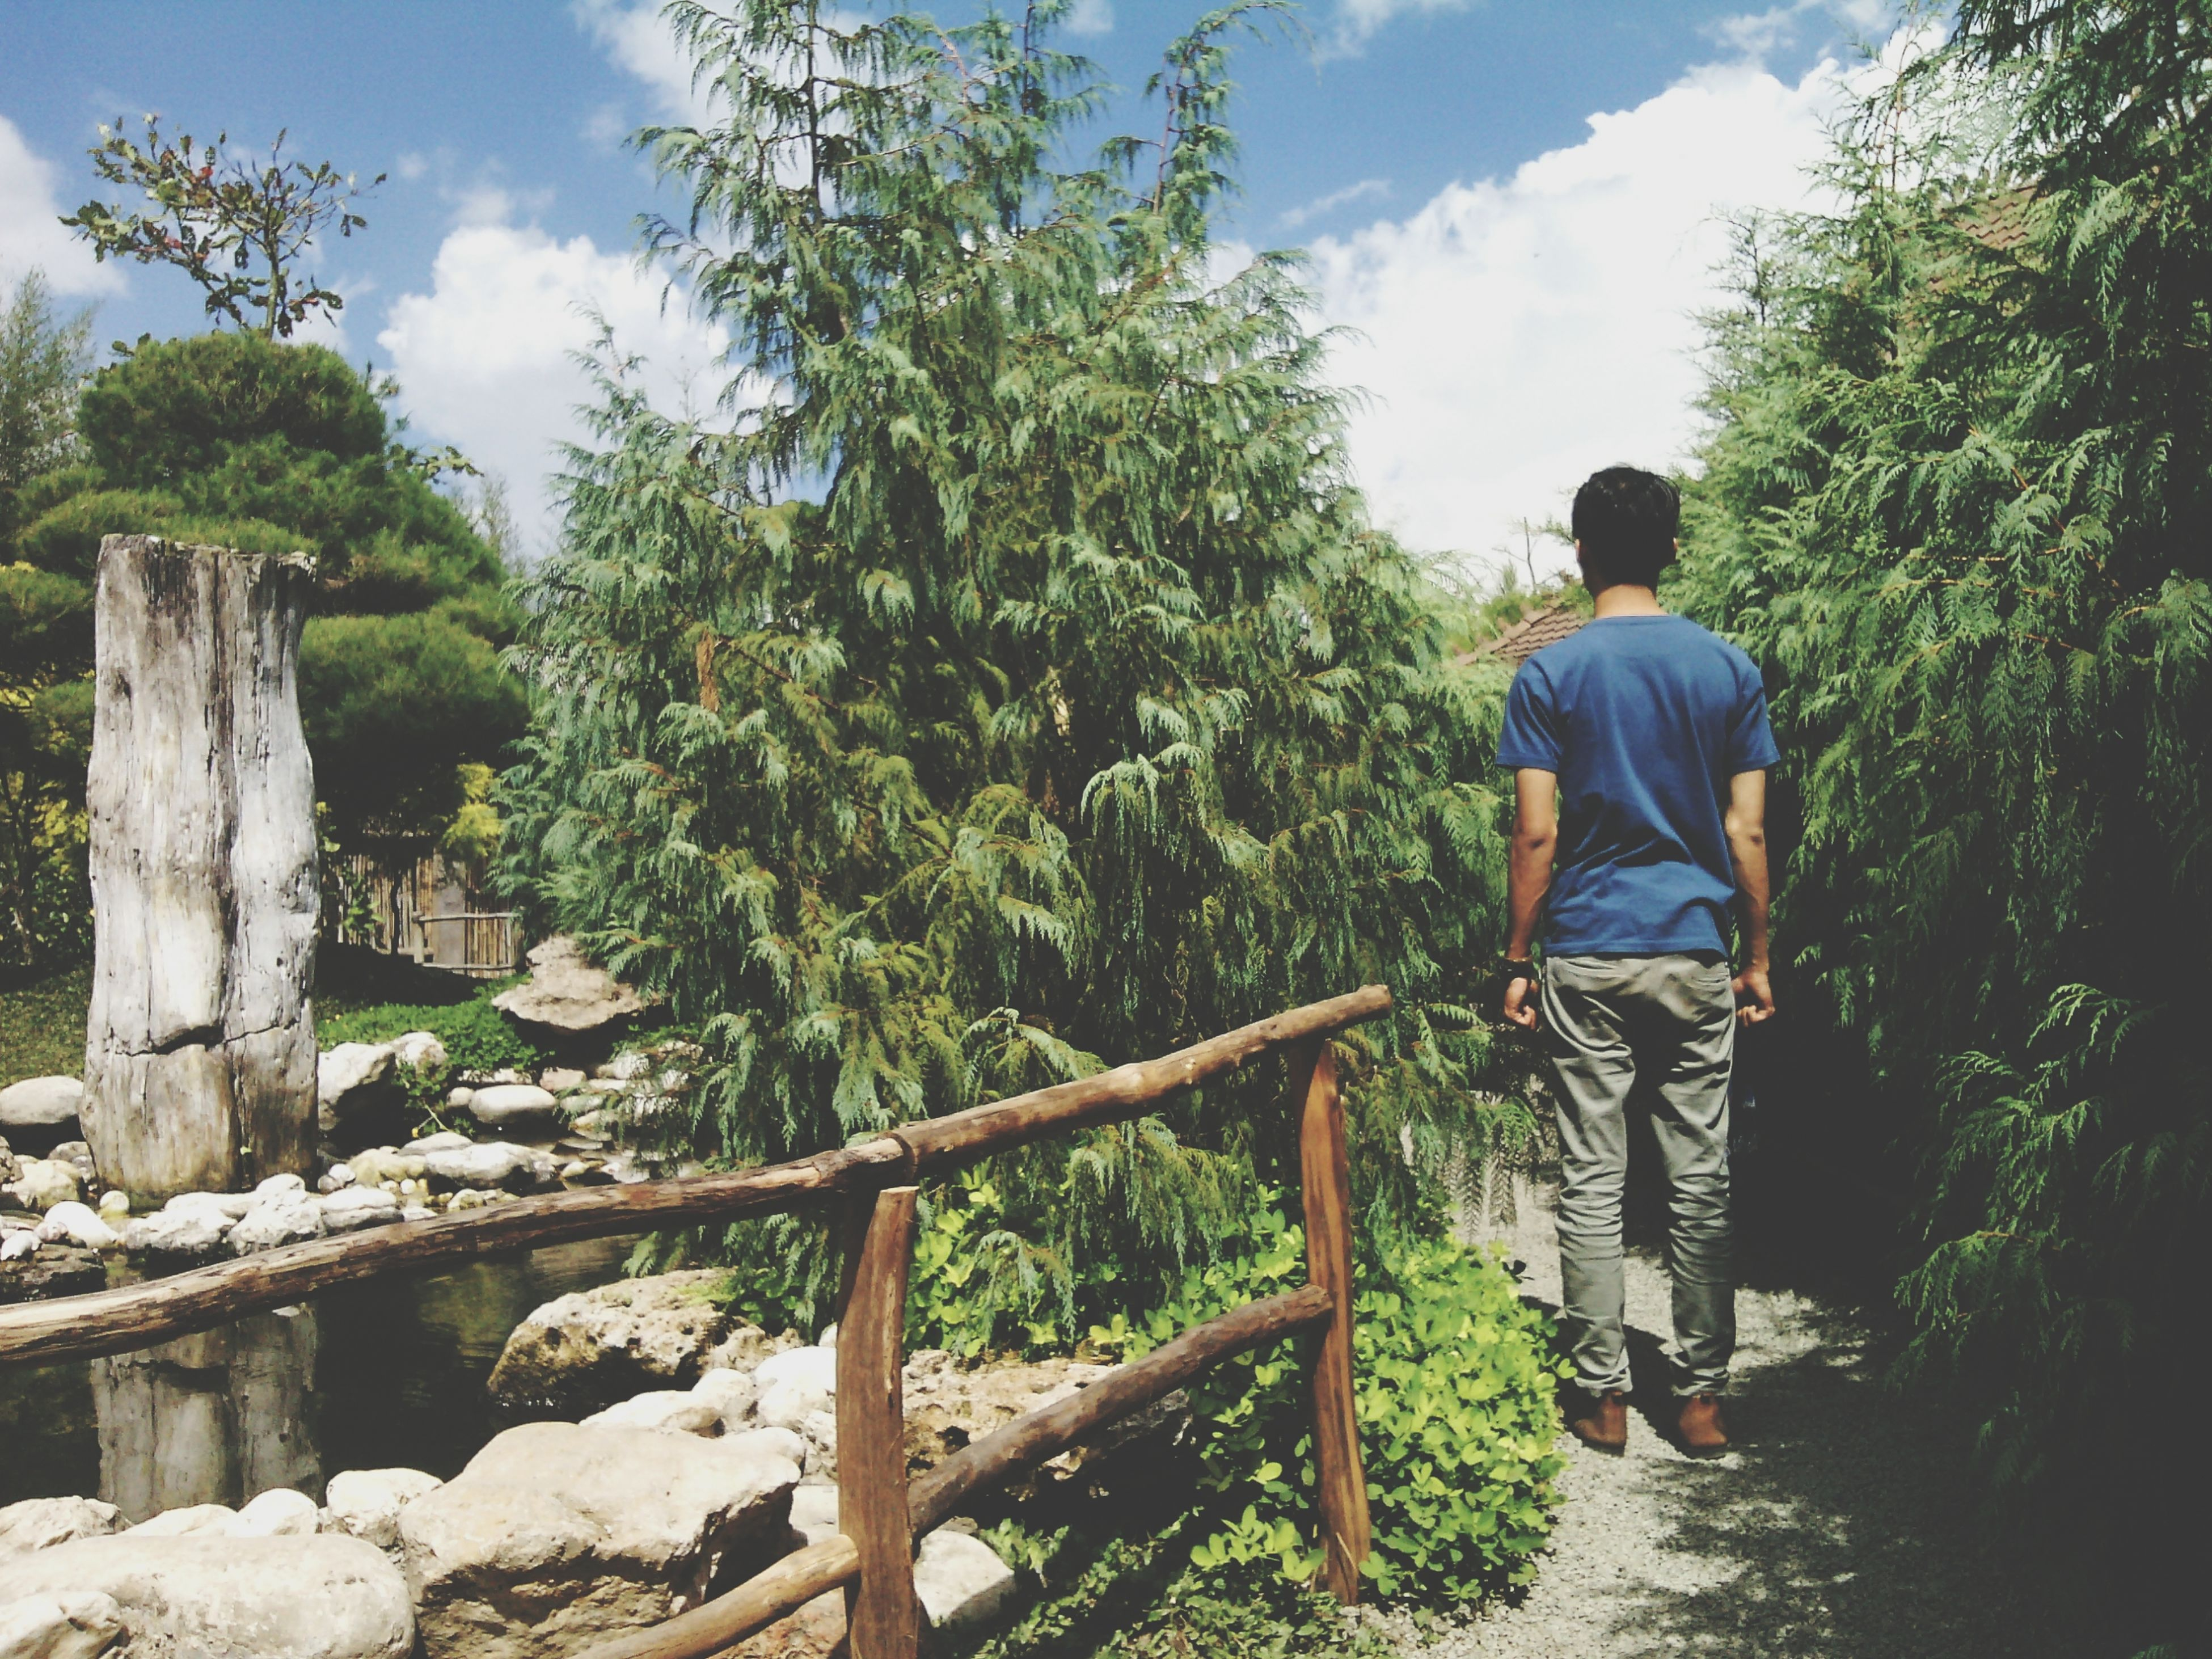 tree, lifestyles, leisure activity, rear view, full length, railing, casual clothing, men, sky, standing, person, nature, tranquility, wood - material, sitting, day, water